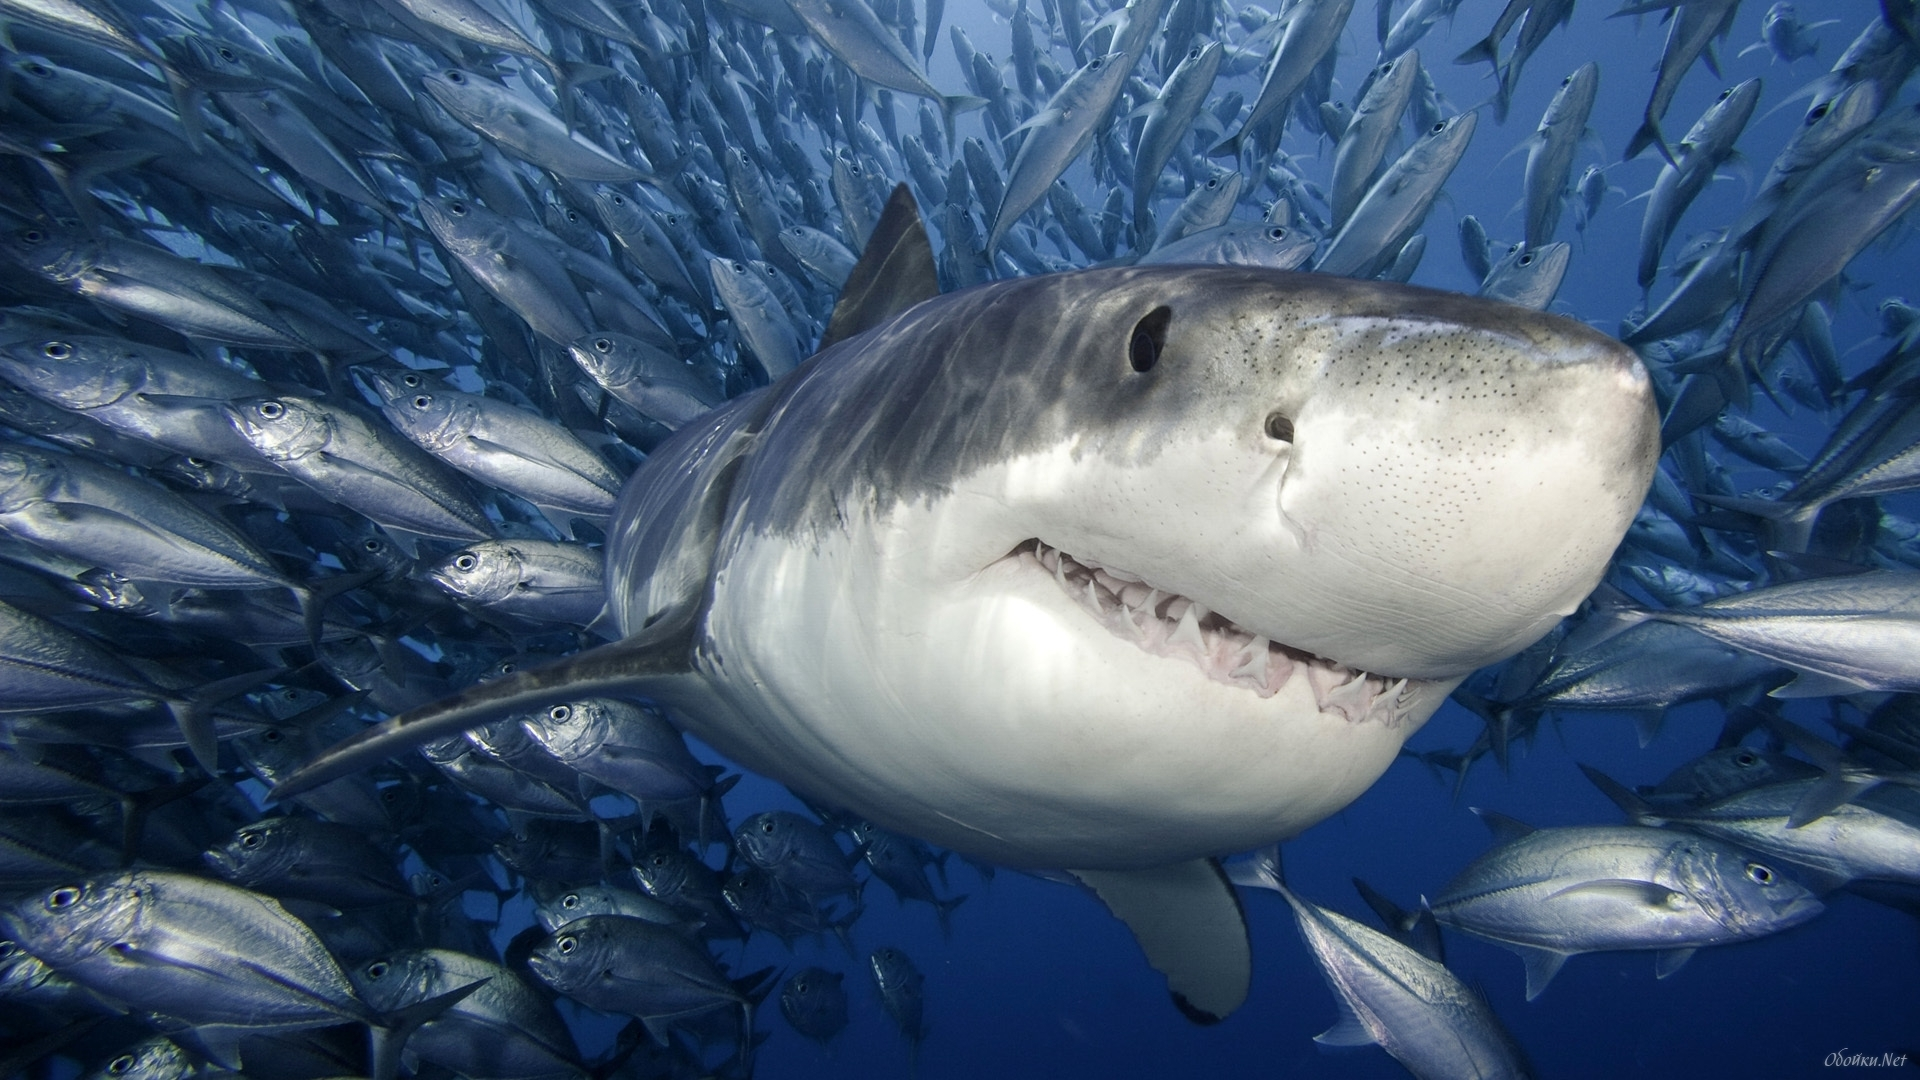 25820 download wallpaper Animals, Sea, Sharks, Fishes screensavers and pictures for free